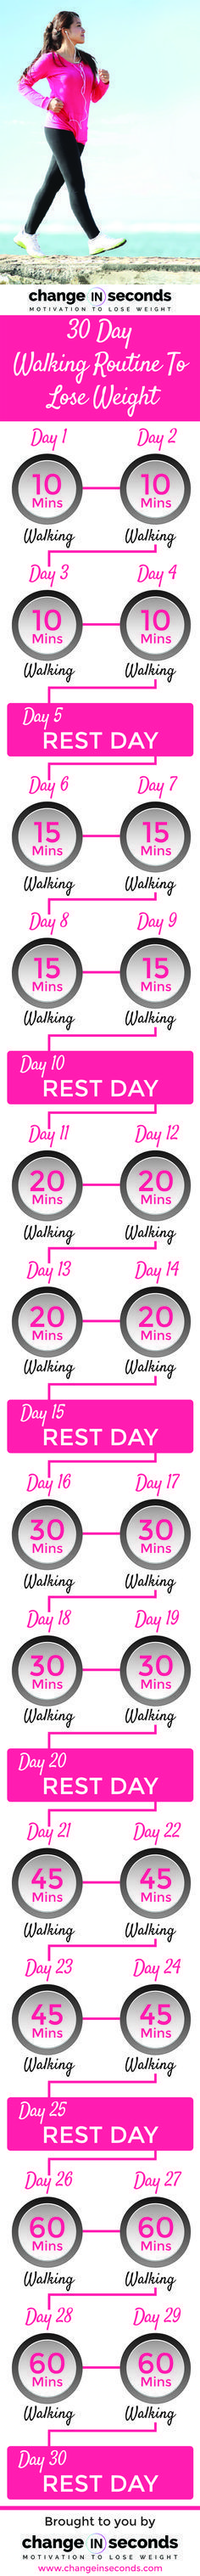 Fitness Motivation : 30 Day Walking Routine To Lose Weight www.changeinsecon…